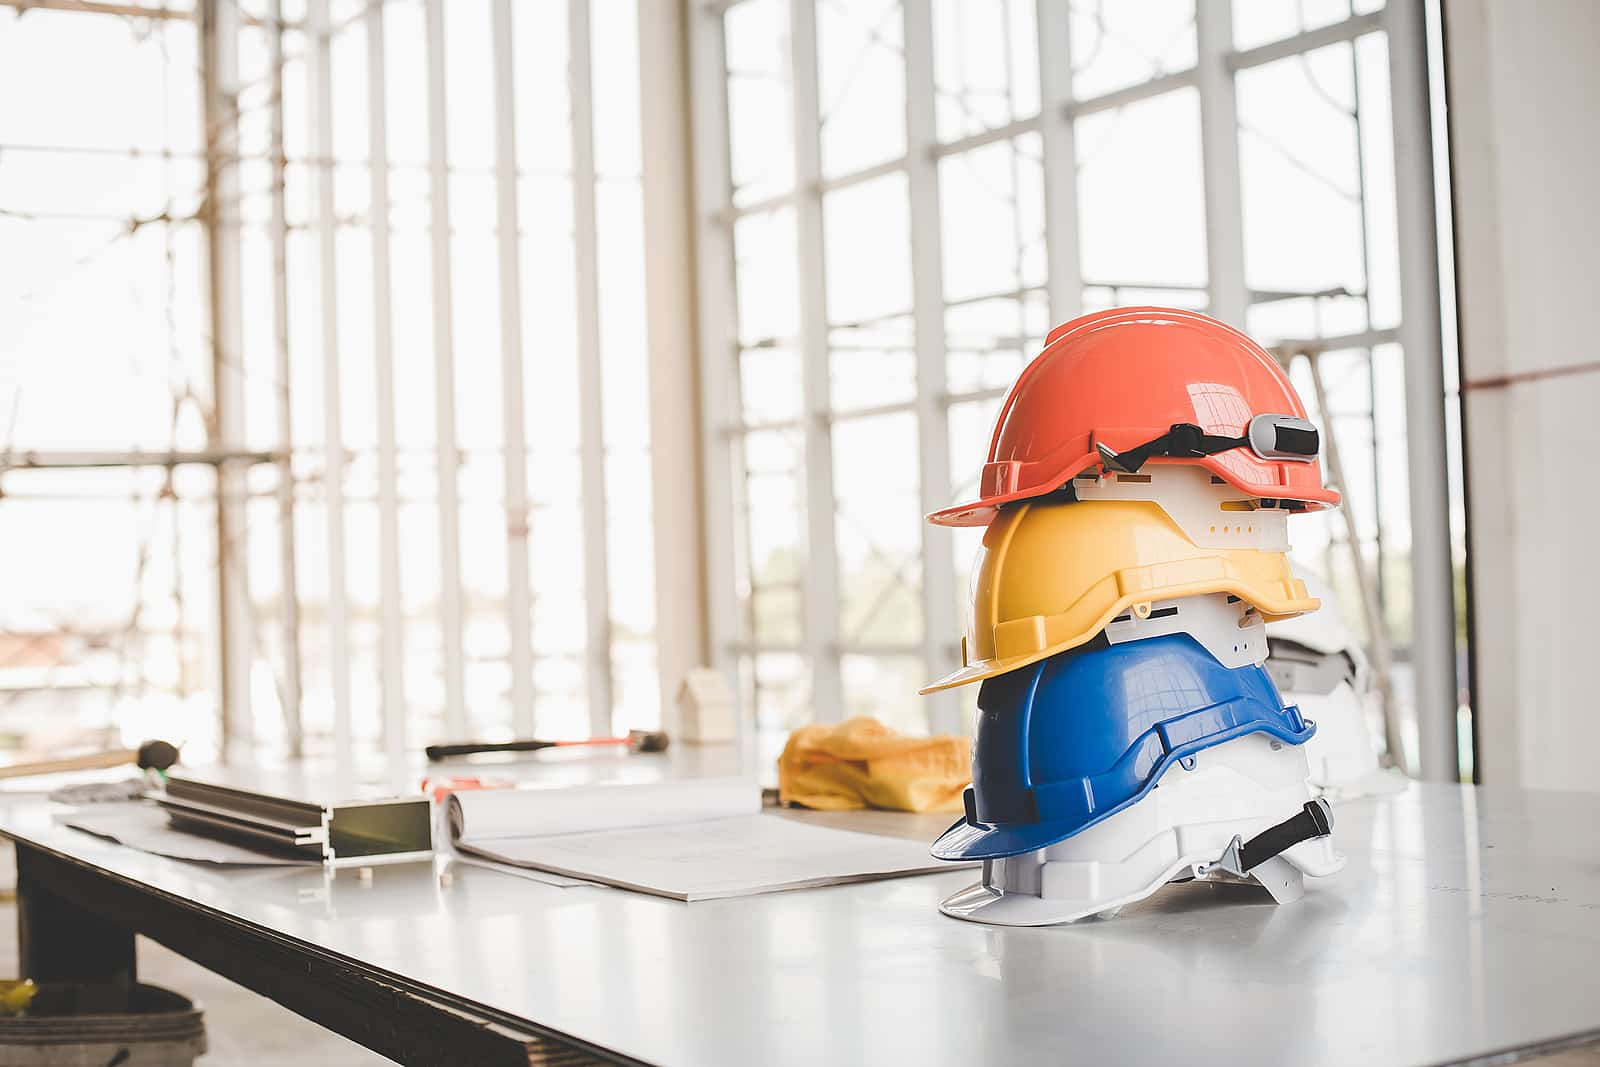 Yellow,white, Blue, Orange helmet safety engineer for project engineering.Conceptual images of construction engineer projects and engineering safety tools.